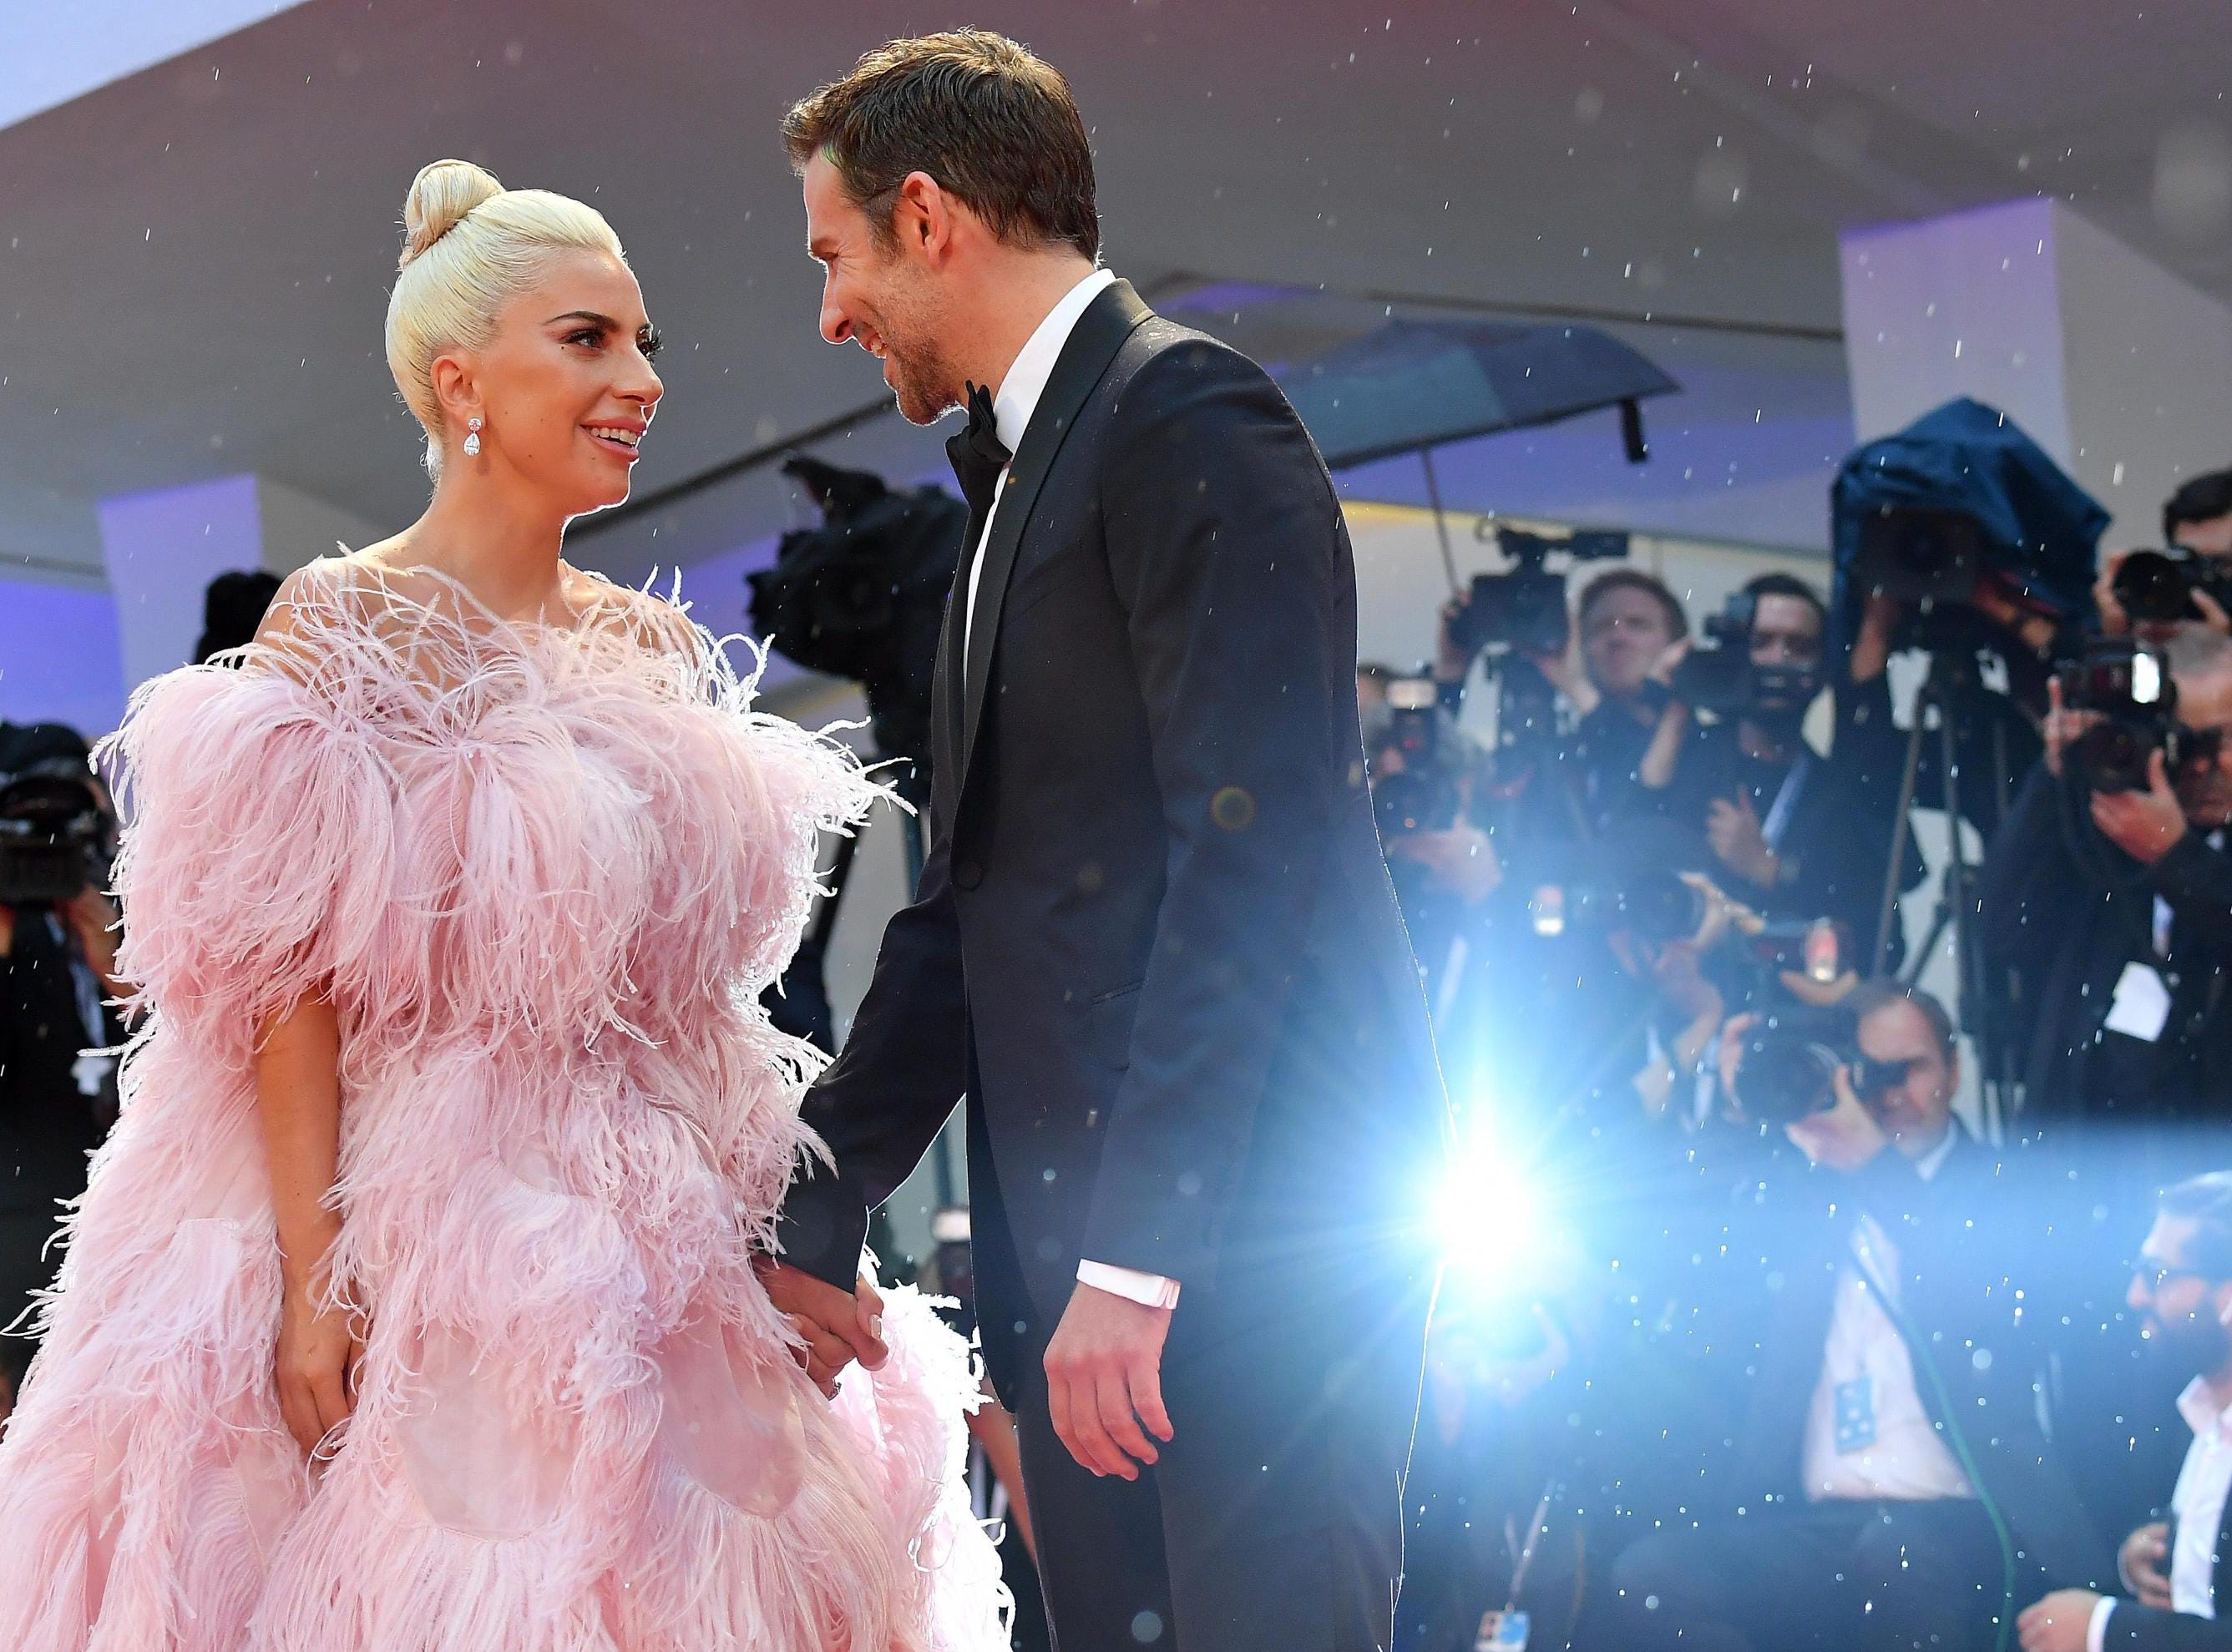 """She also walked hand-in-hand with """"A Star Is Born"""" co-star Bradley Cooper."""